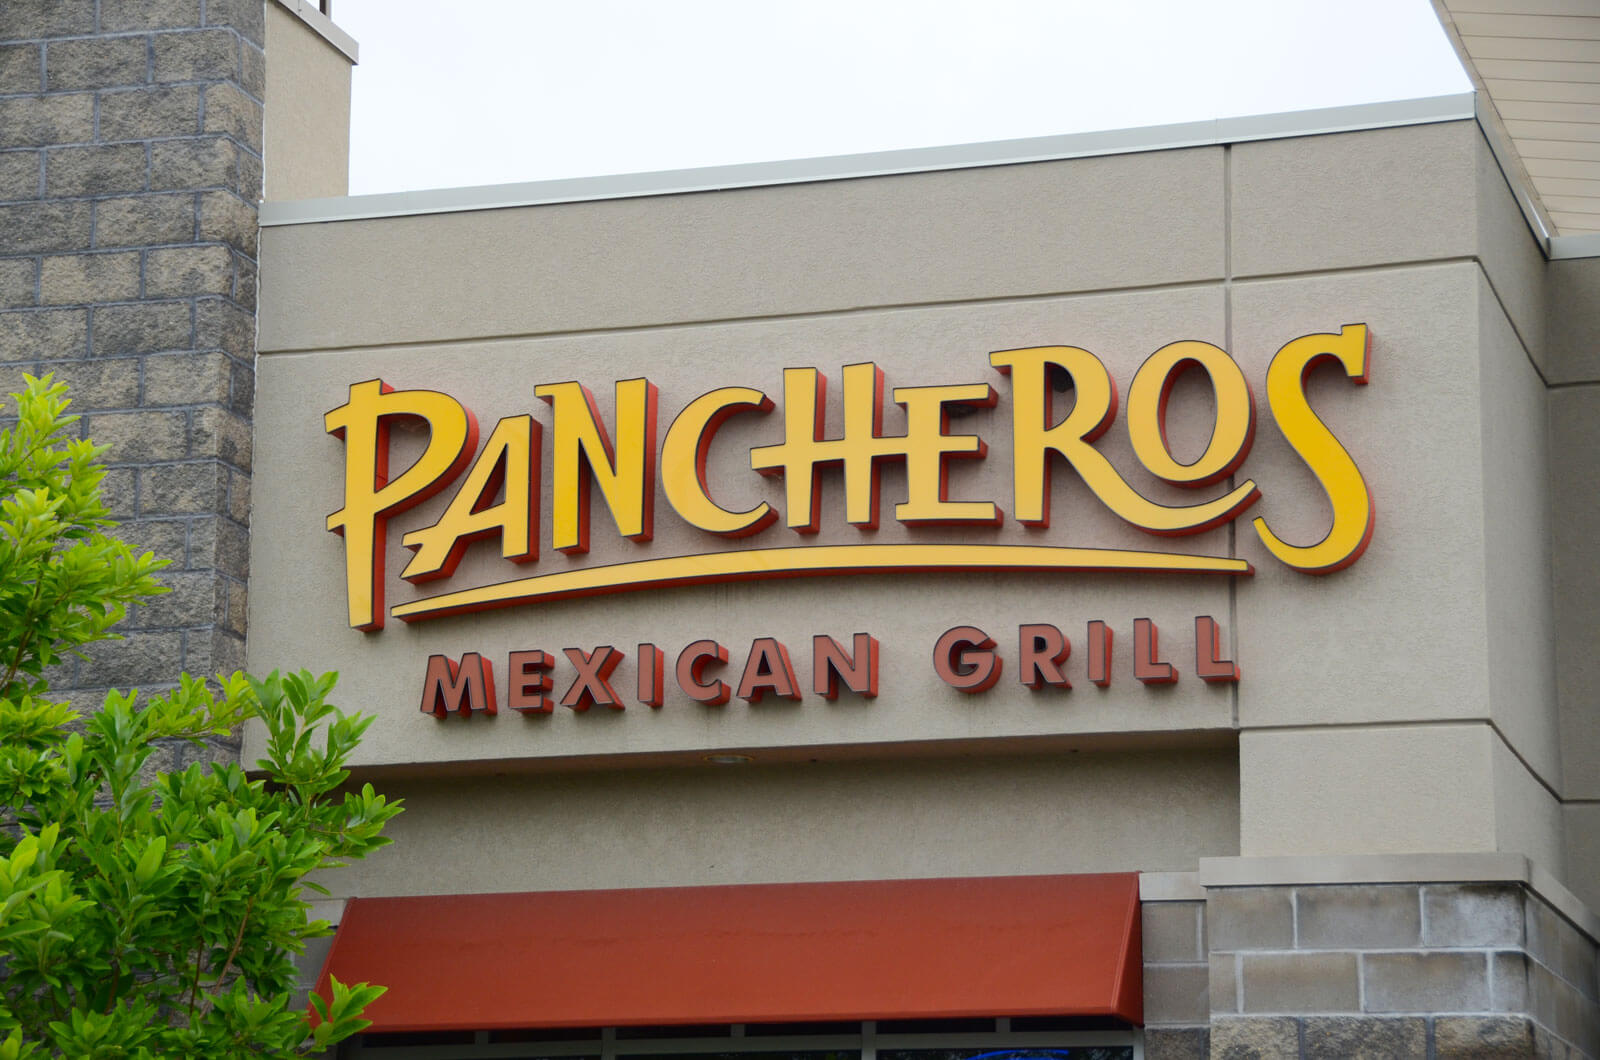 Pancheros Mexican Grill fast-casual franchise sign